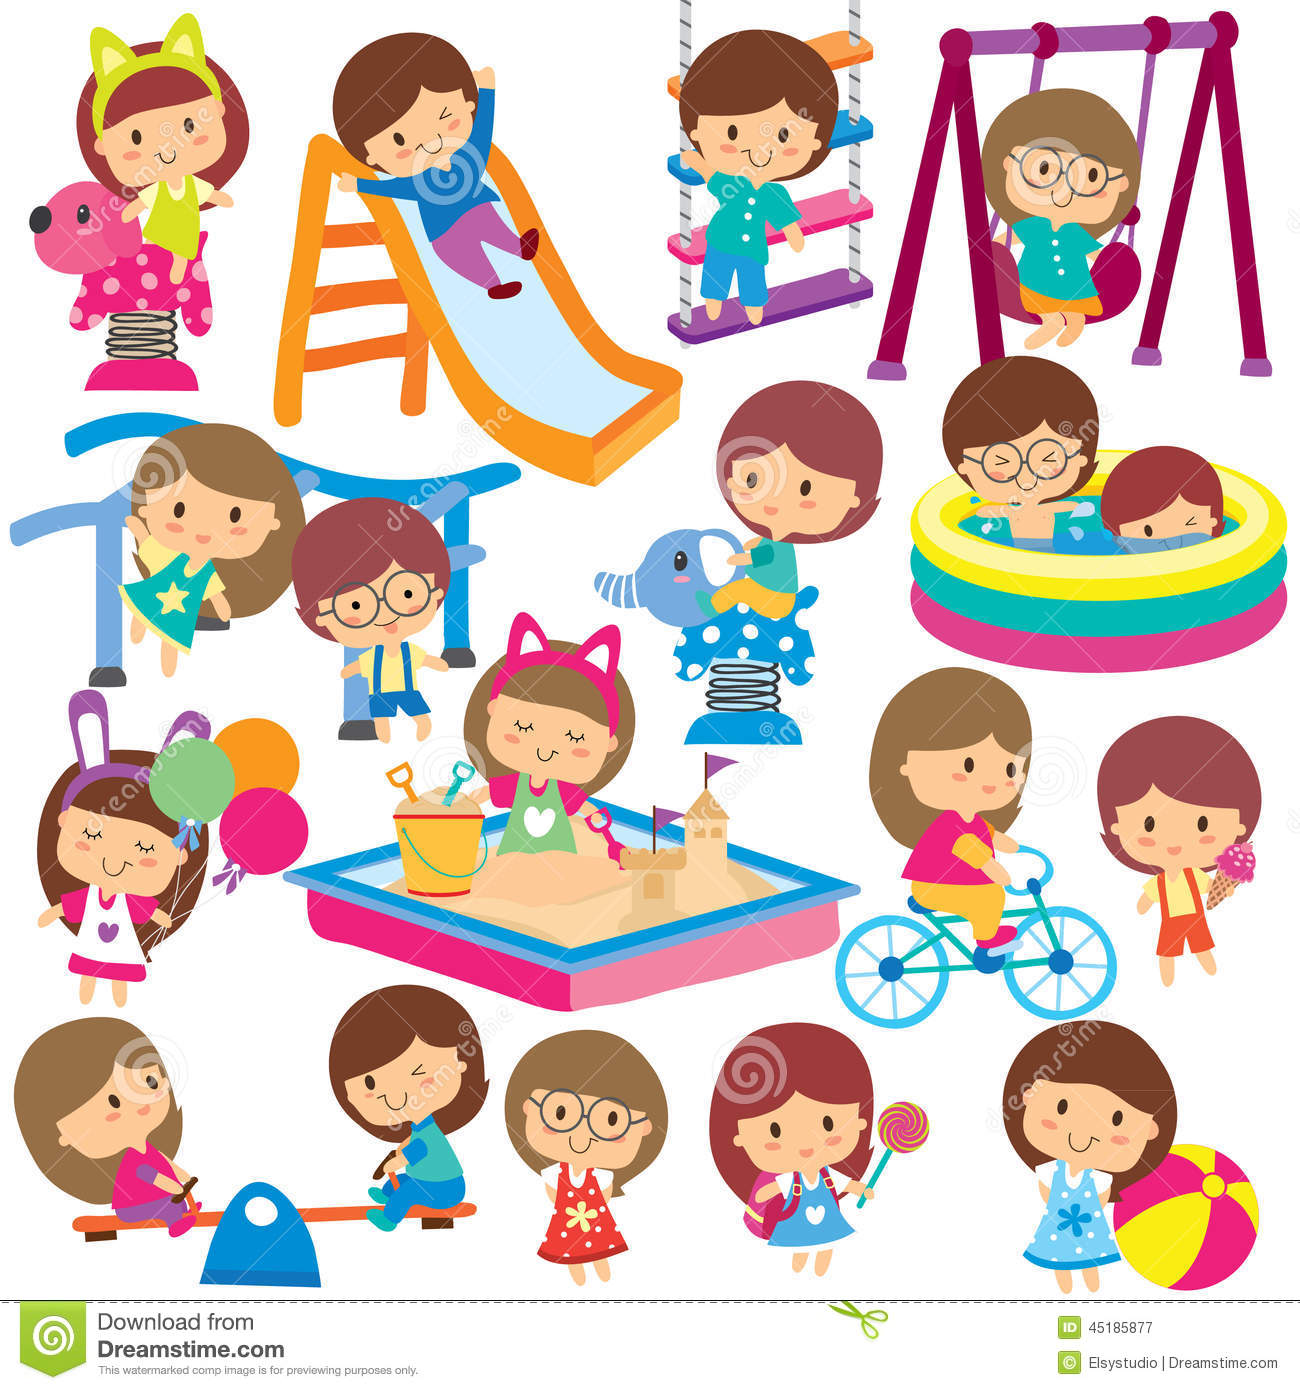 Kids activities clipart picture library stock Summer activities for kids clipart 8 » Clipart Station picture library stock